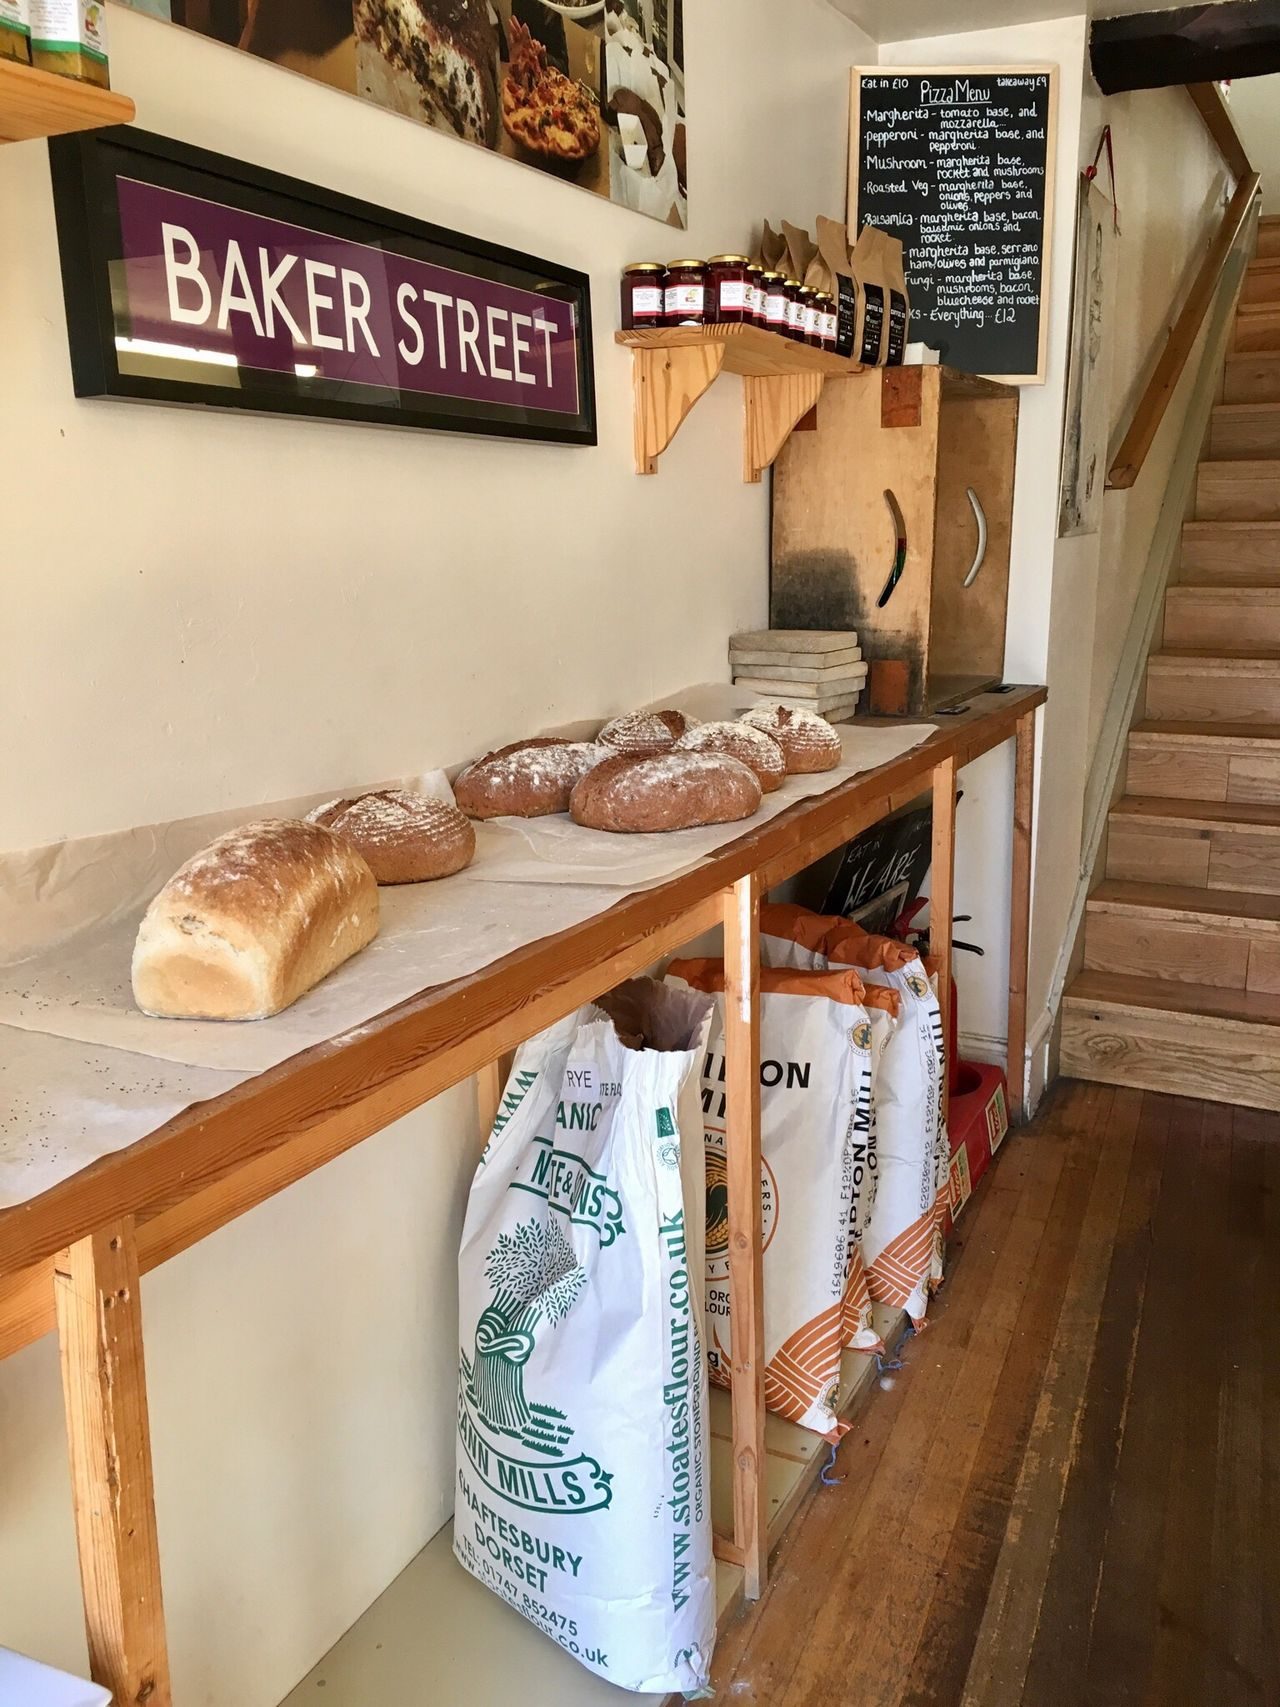 Baker Indoors  Text Food No People Table Price Tag Day Bread Baker Freshly Baked